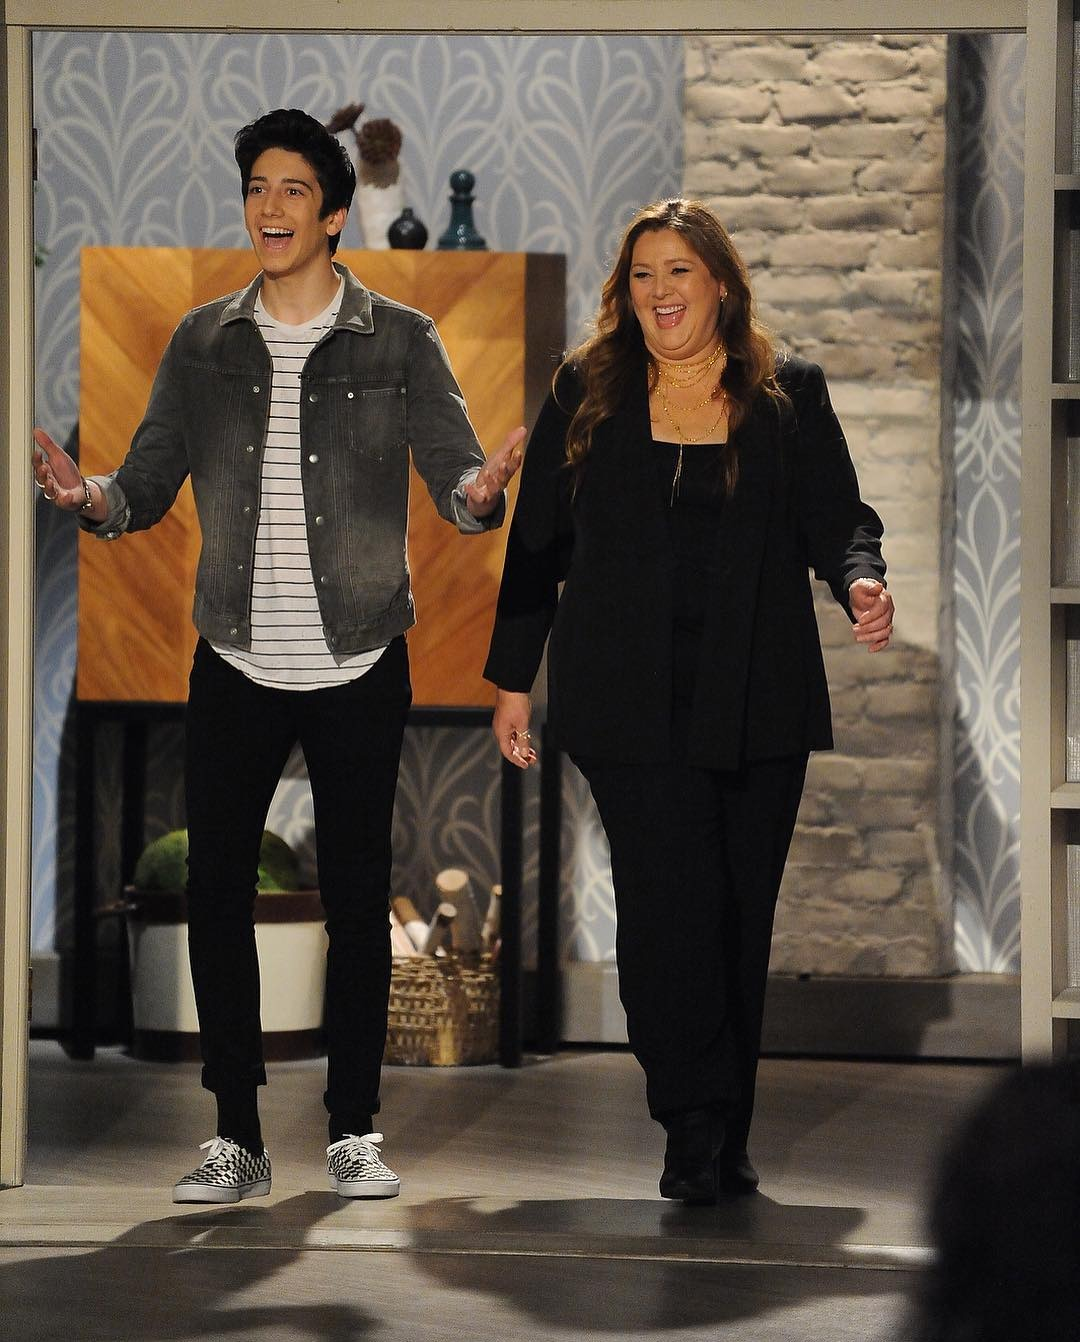 Milo and his mother Camryn Manheim in show The Talk.